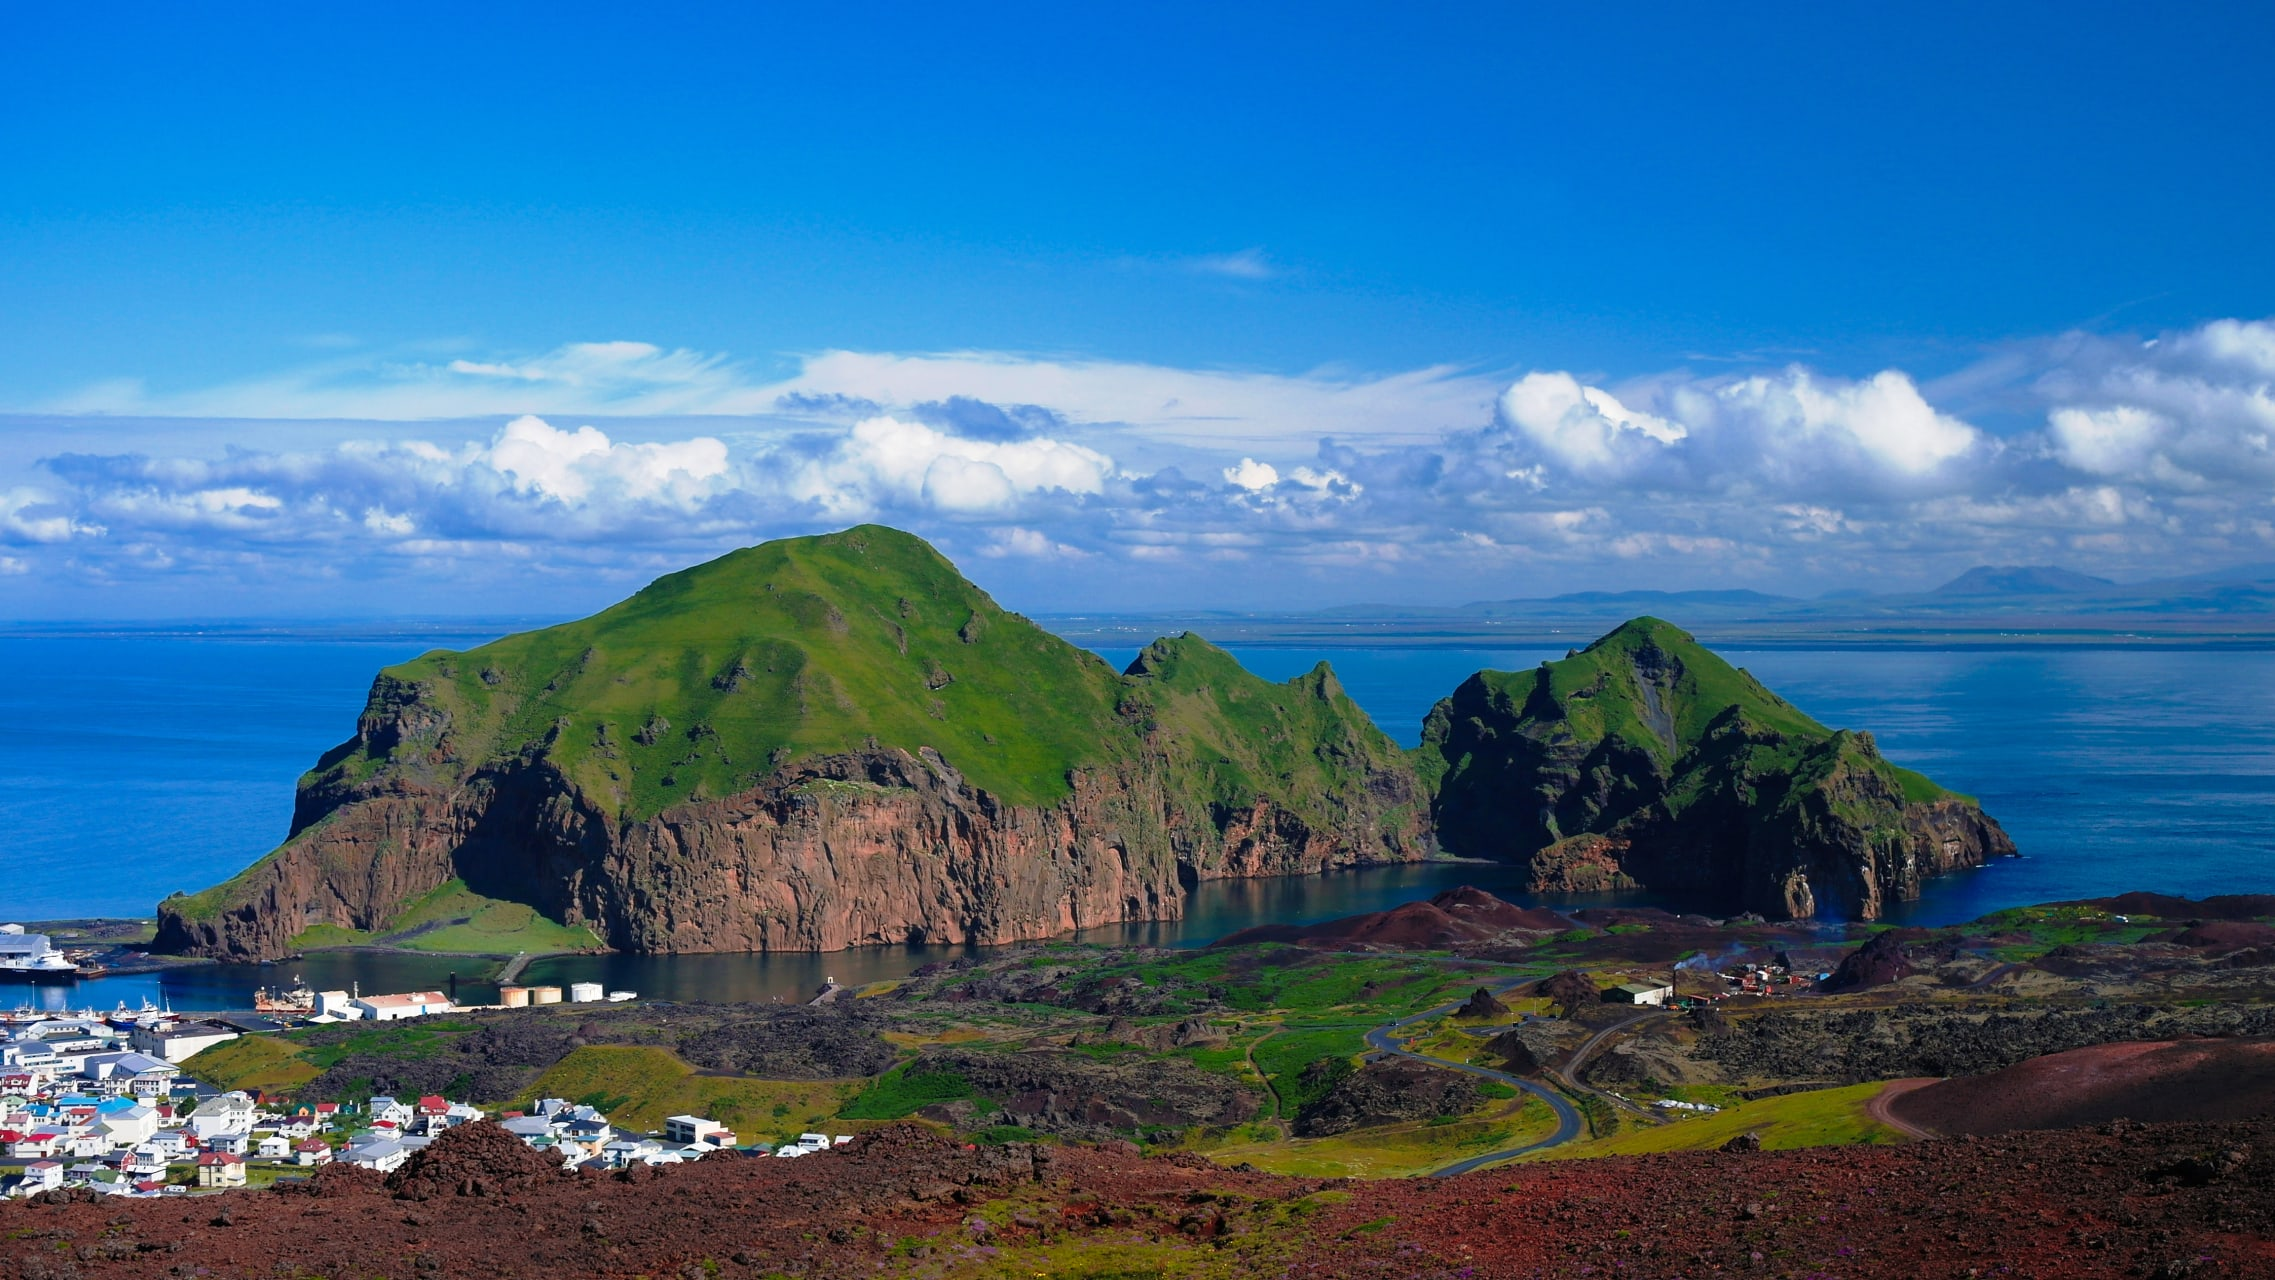 South Iceland - Westman Islands - a recent eruptive site with 5000 inhabitants